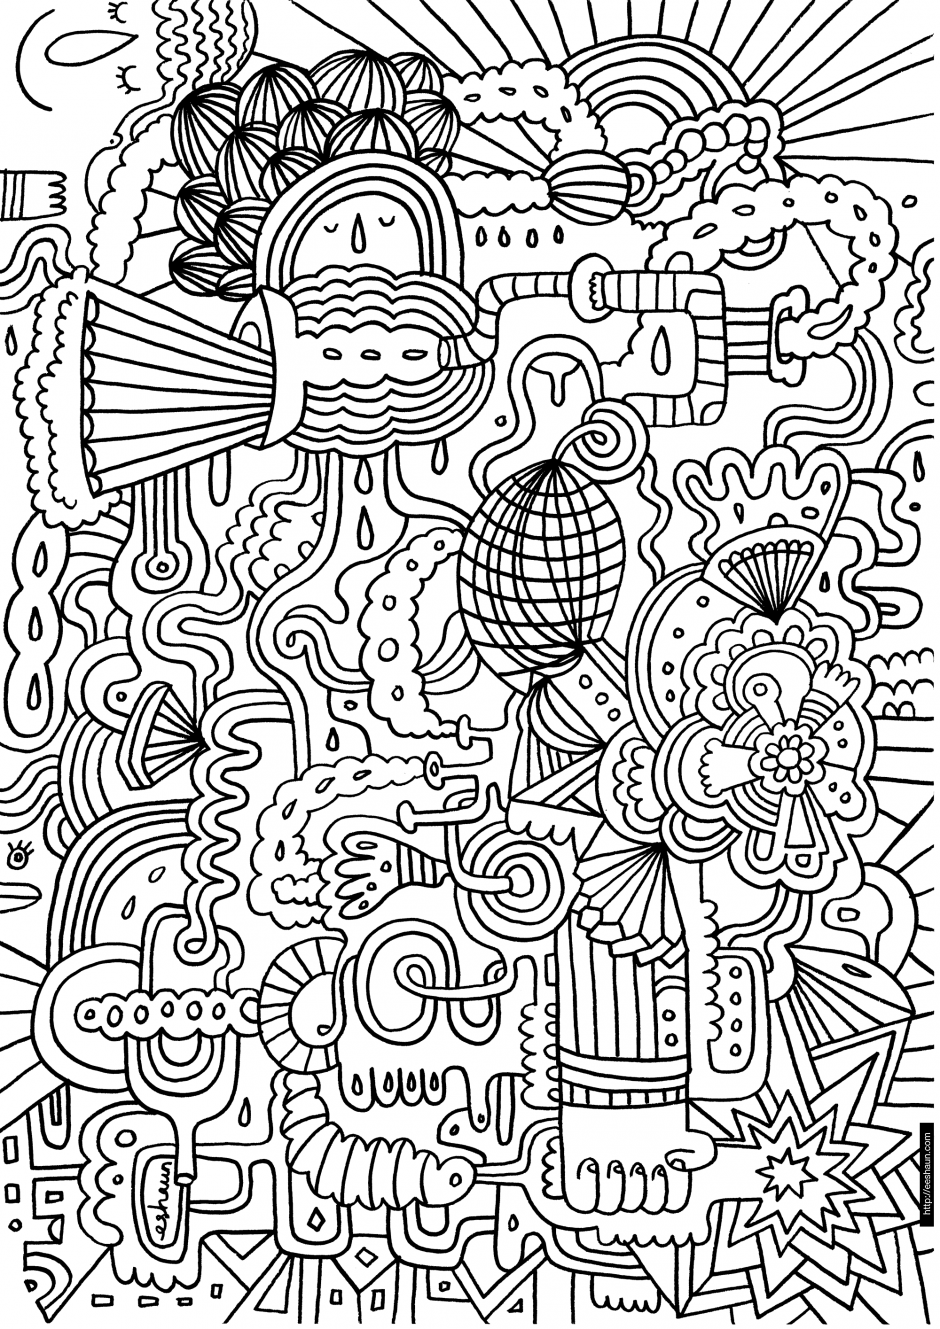 girl difficult coloring pages - photo#16